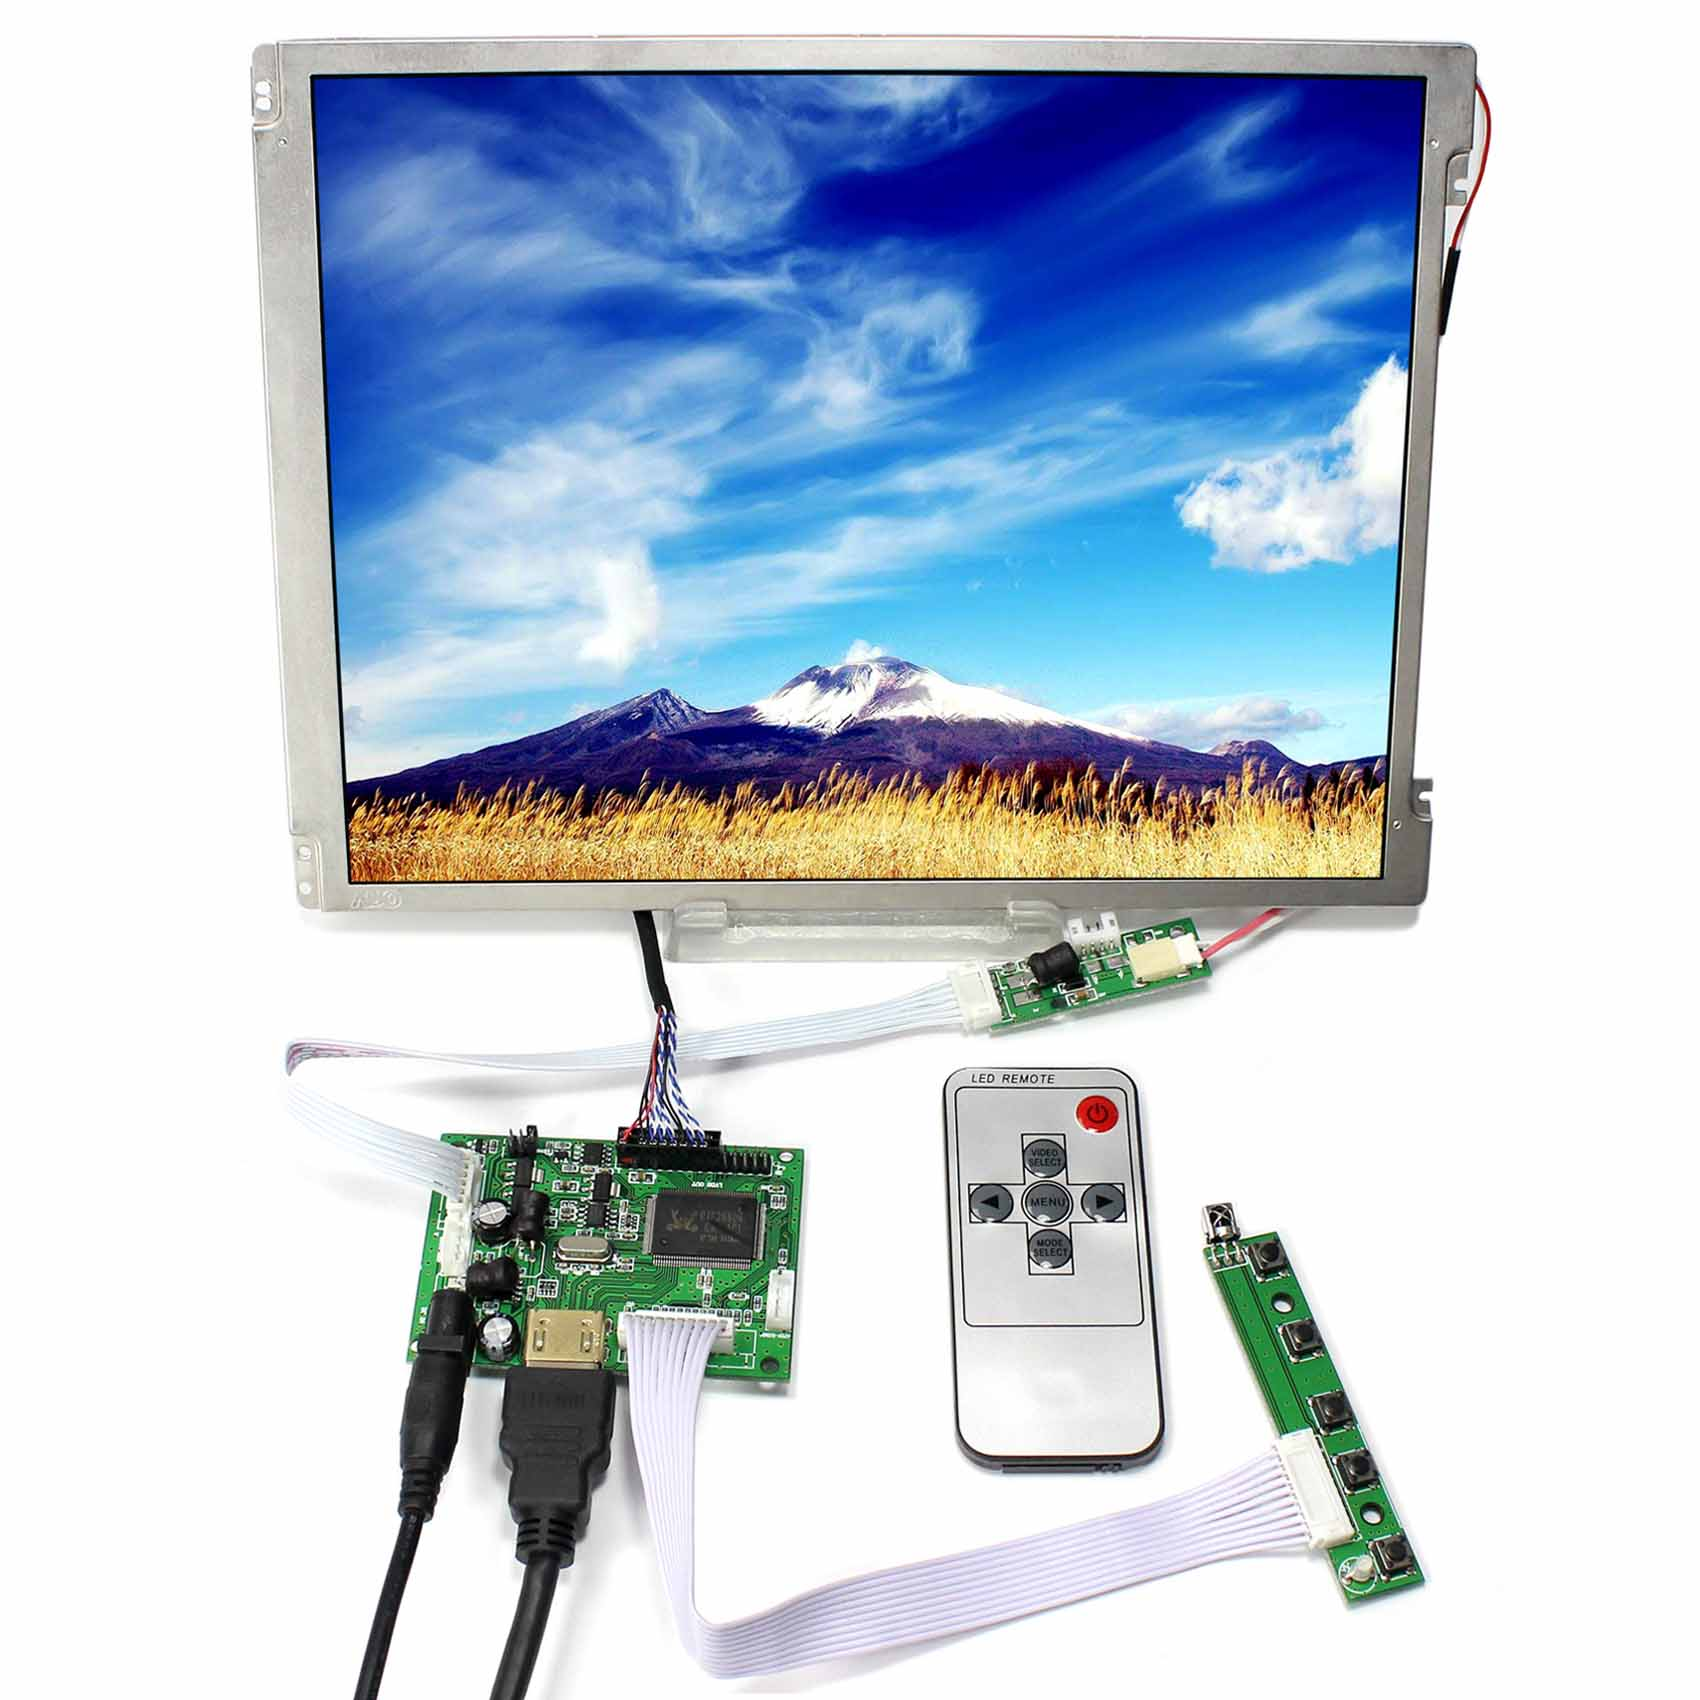 HDMI LCD Controller Board 10.4inch 800x600 LED Backlight Replace G104SN03-V1HDMI LCD Controller Board 10.4inch 800x600 LED Backlight Replace G104SN03-V1